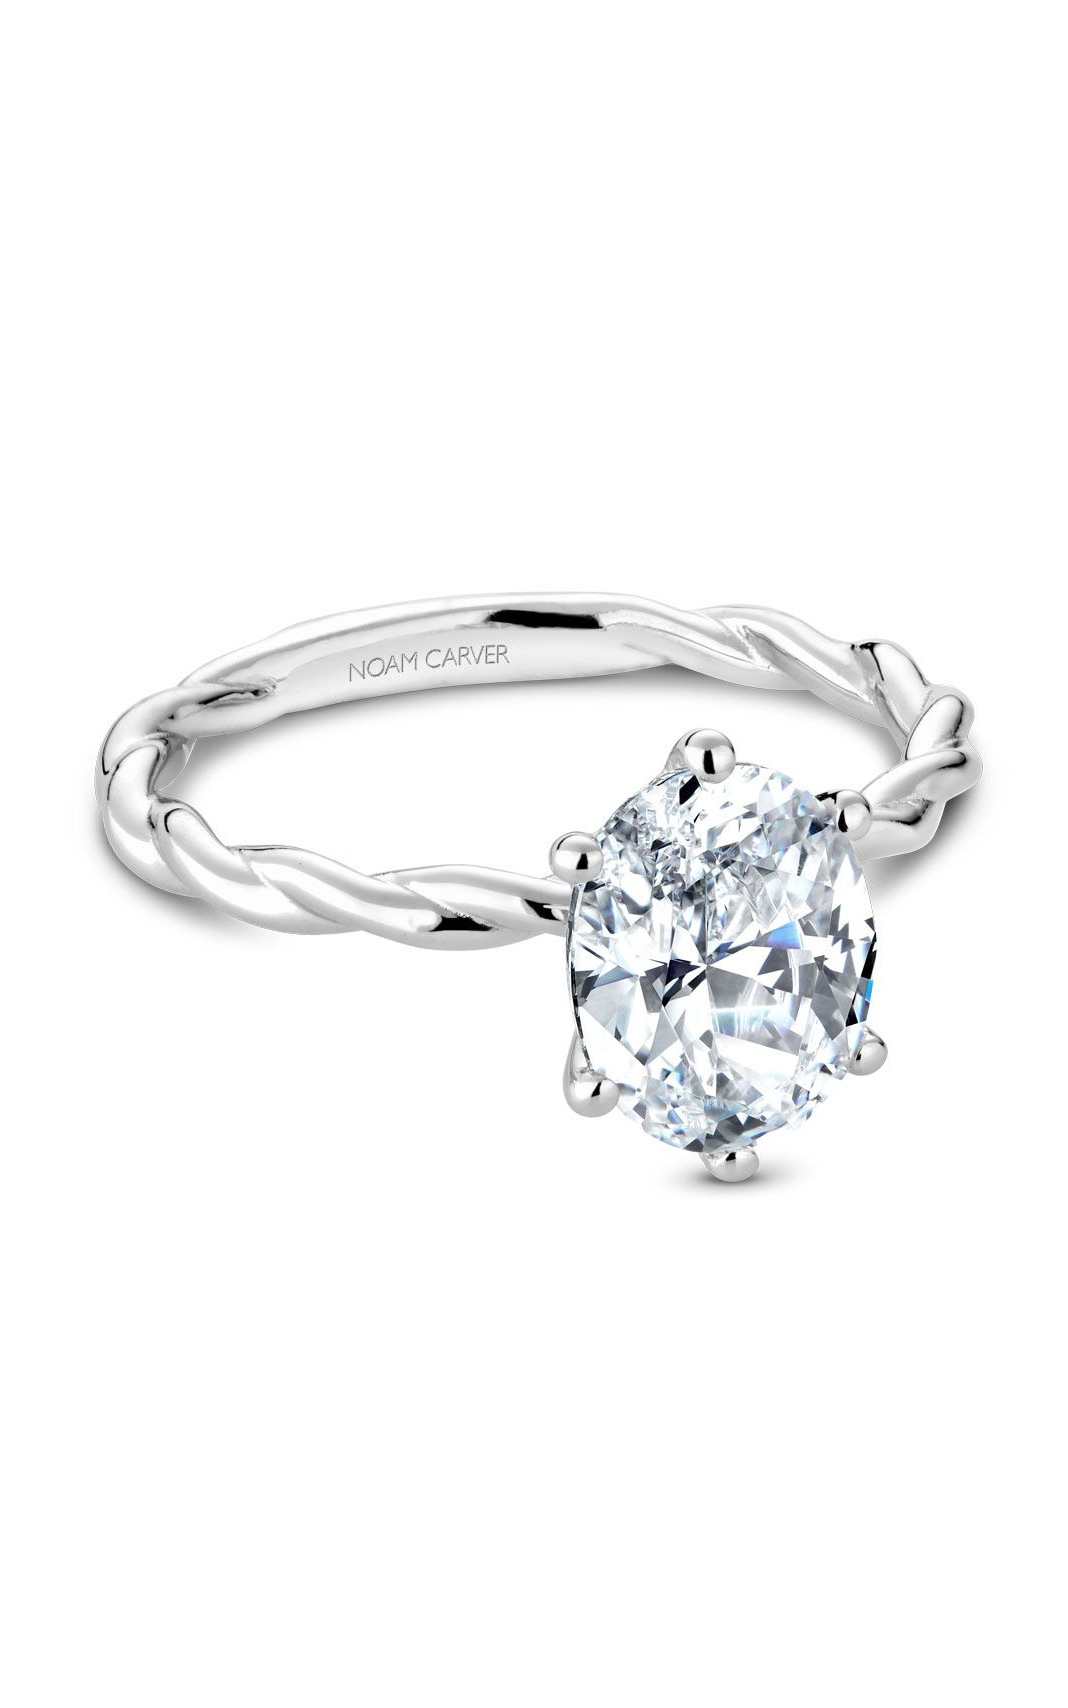 Noam Carver Twist Band Engagement Ring B167-01WM product image